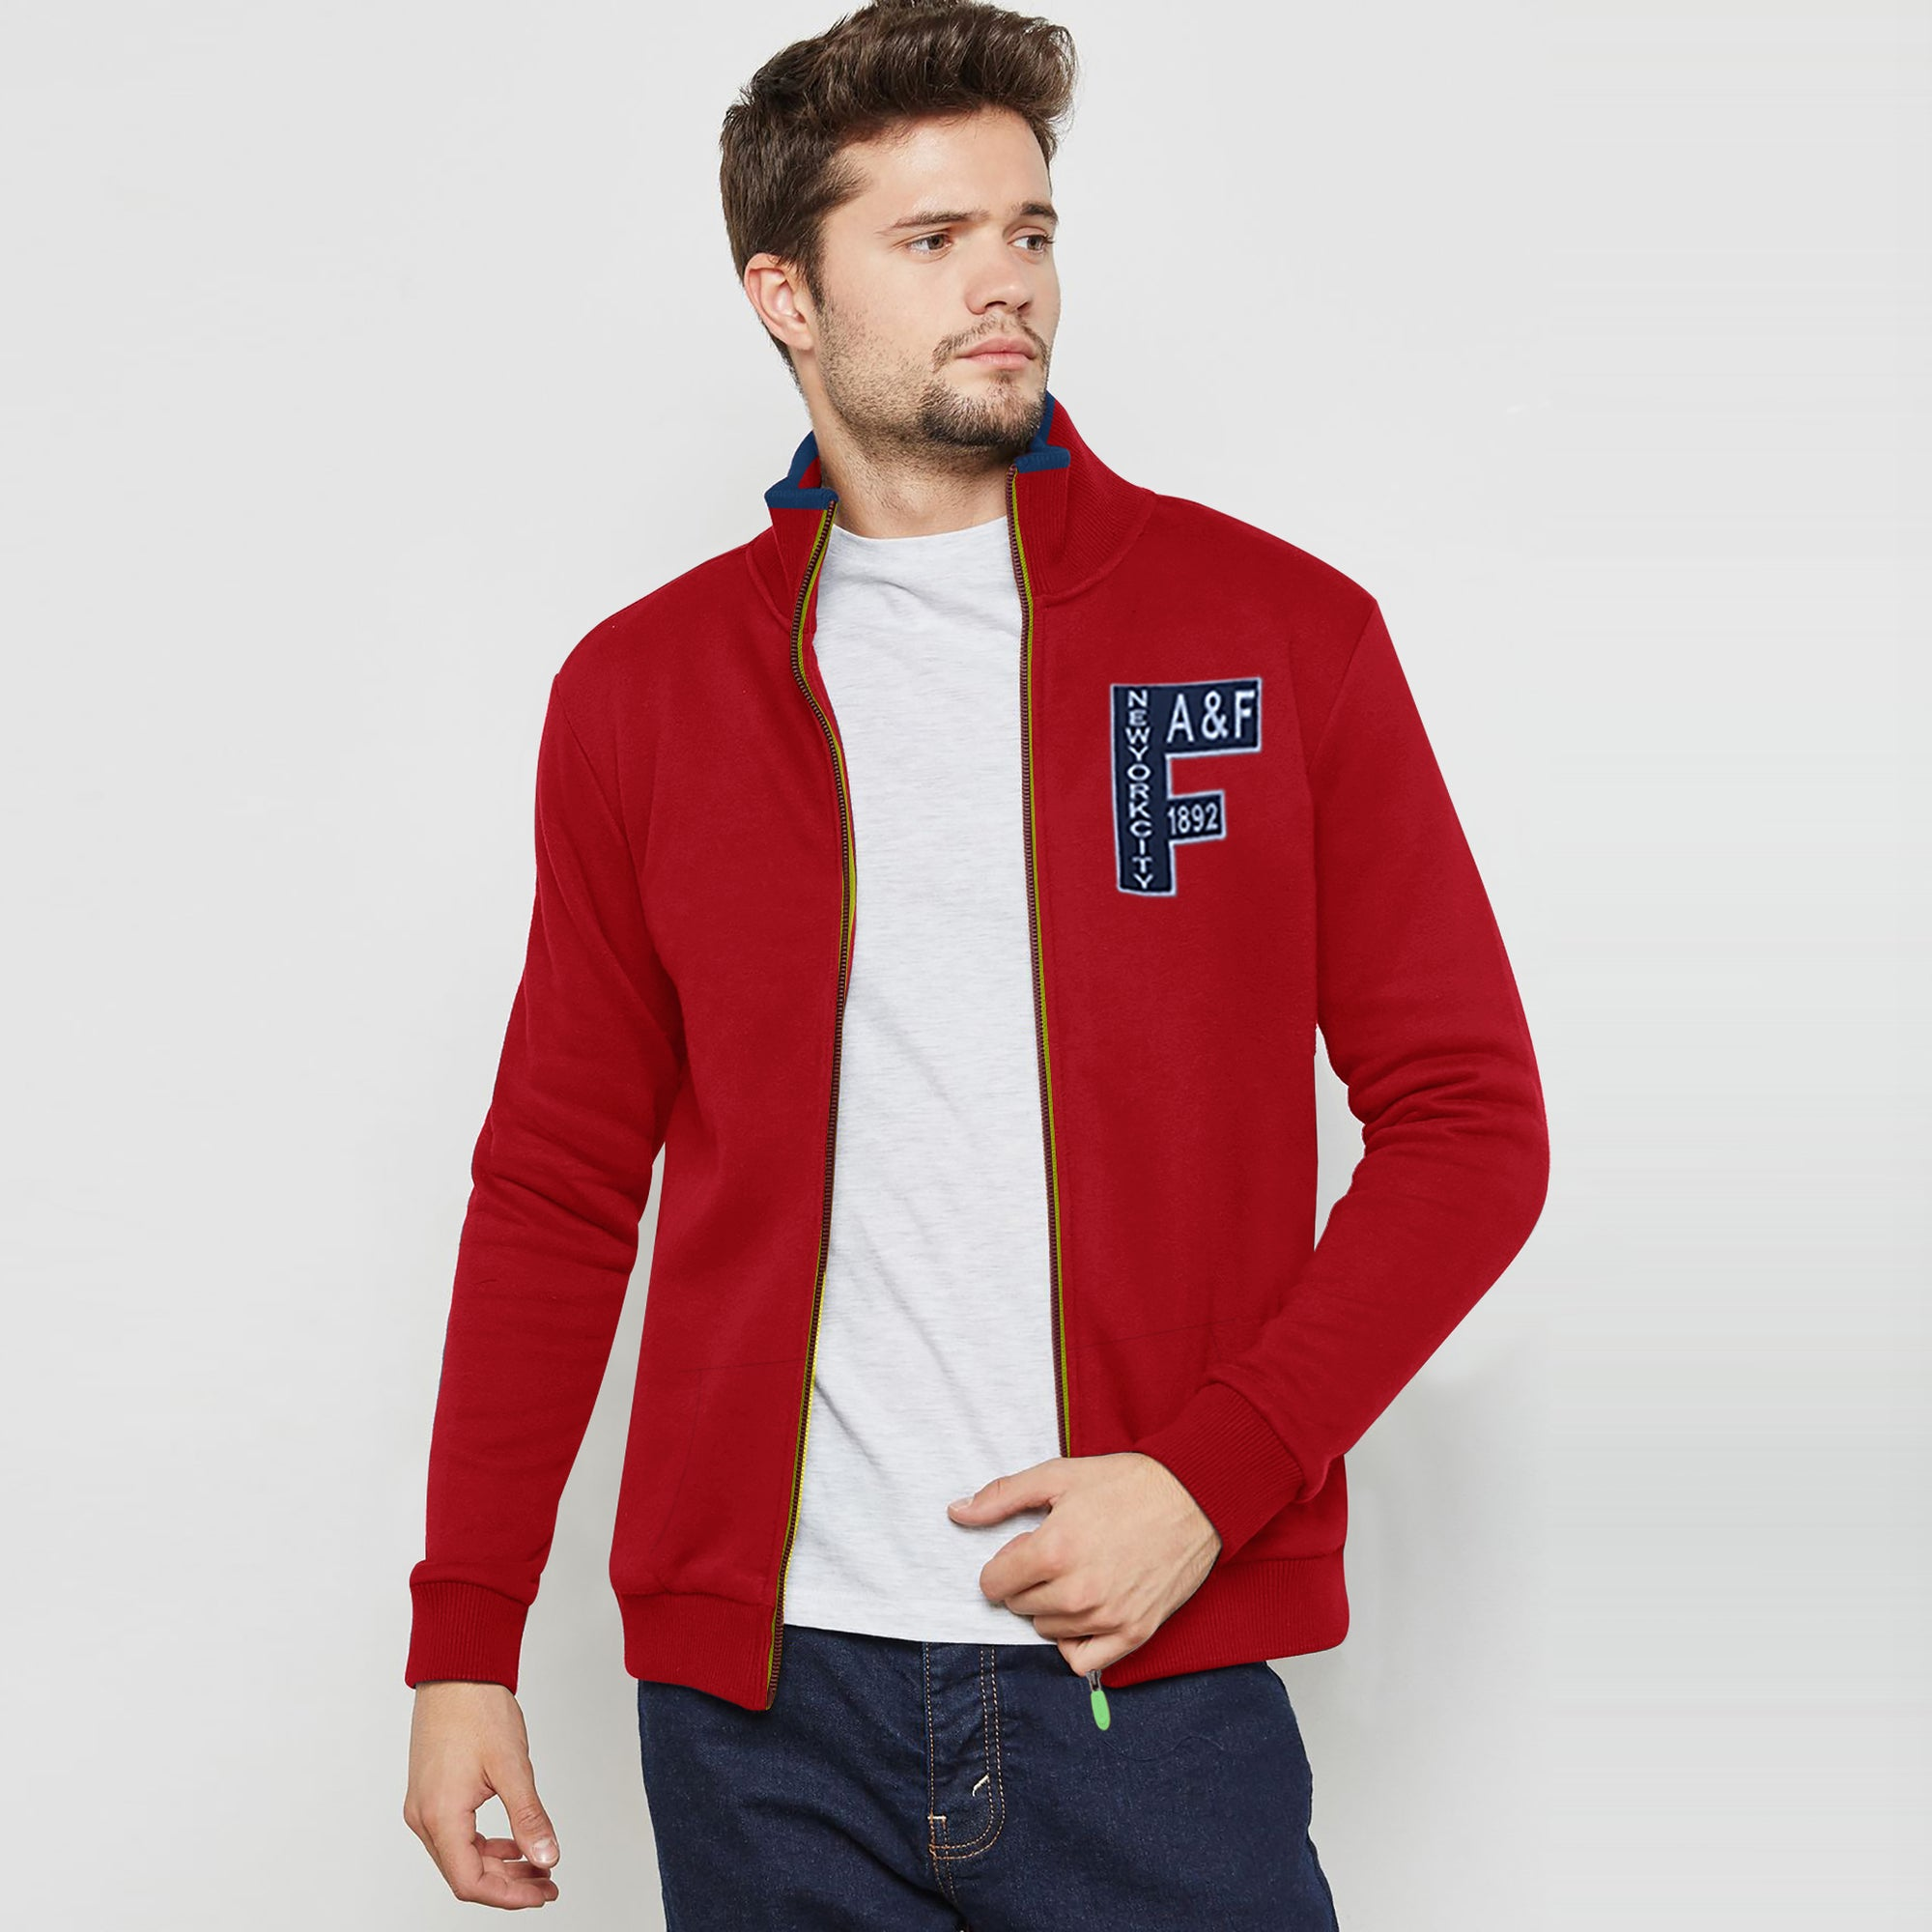 A&F Fleece Full Zipper Mock Neck Jacket For Men-Red-BE7496